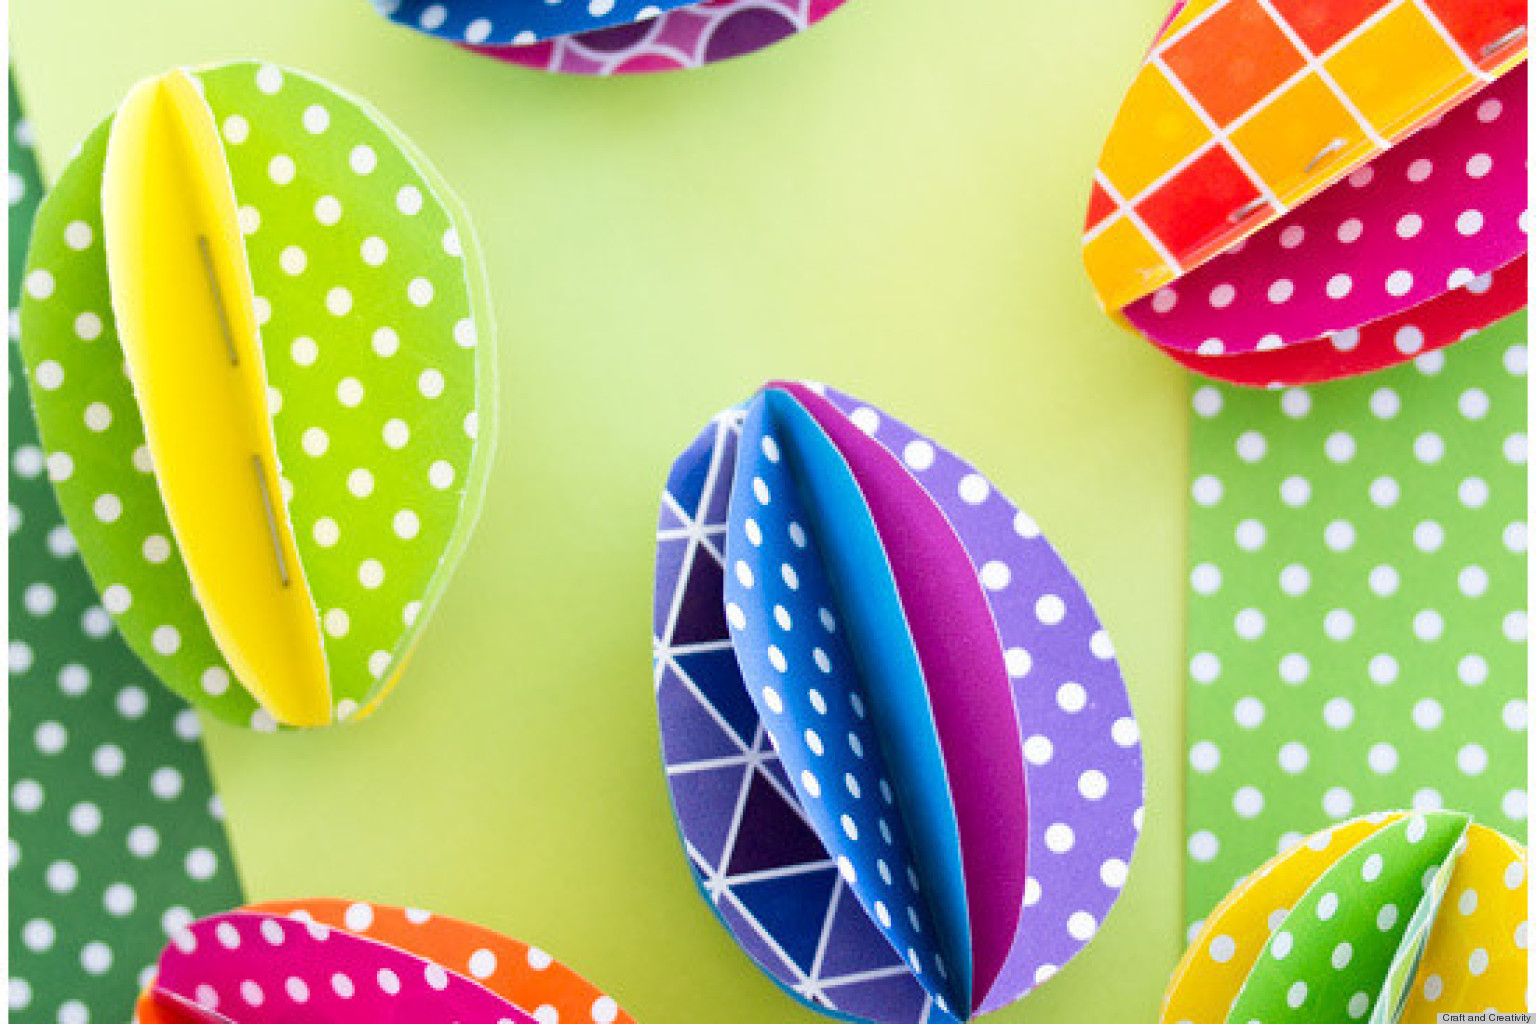 Easter Ideas: 8 Quick And Easy Holiday Crafts Using Paper (PHOTOS) The Huffington Post